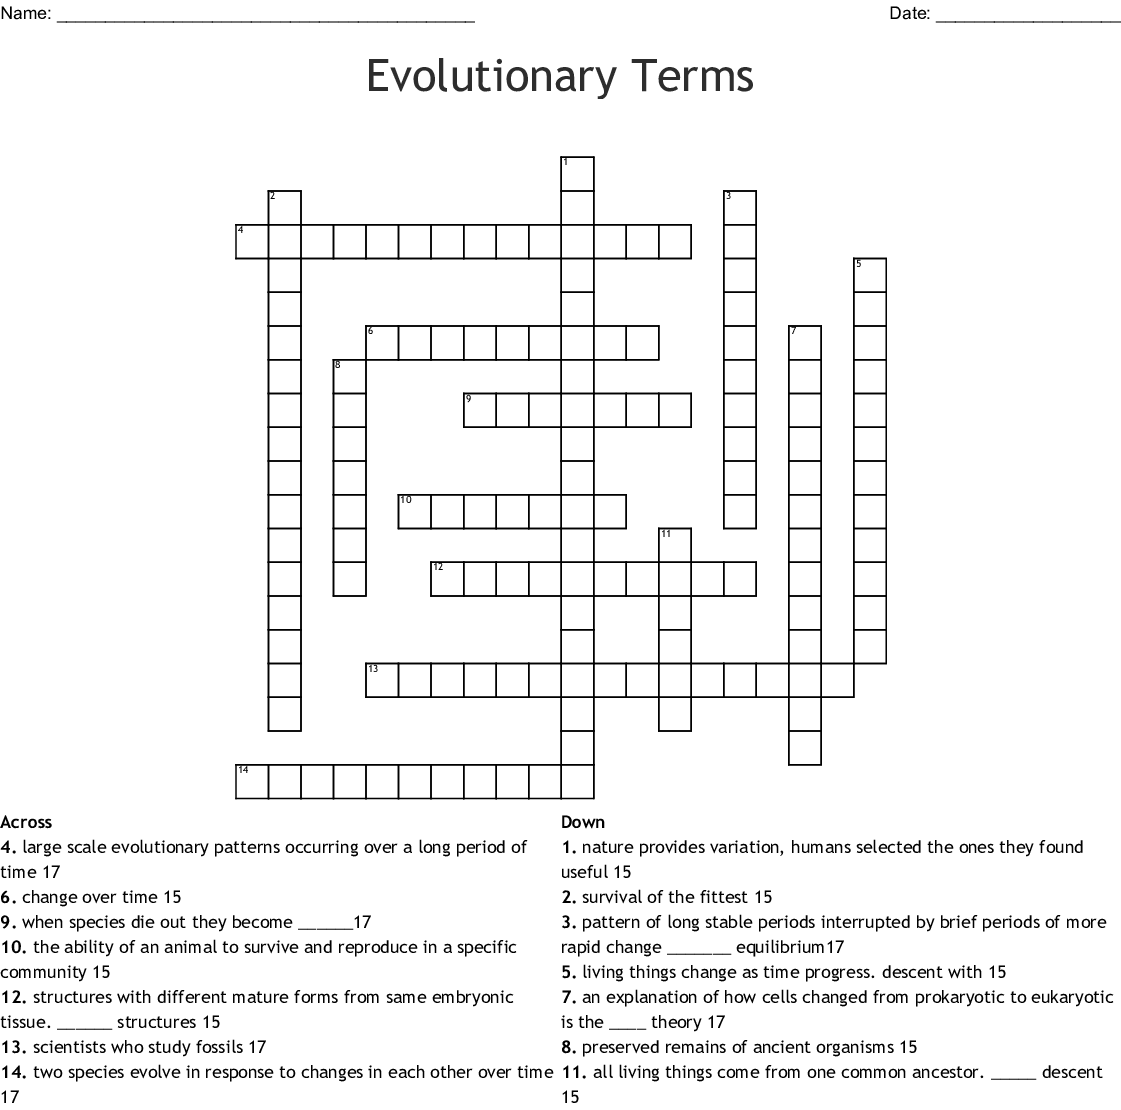 Evolutionary Terms Crossword